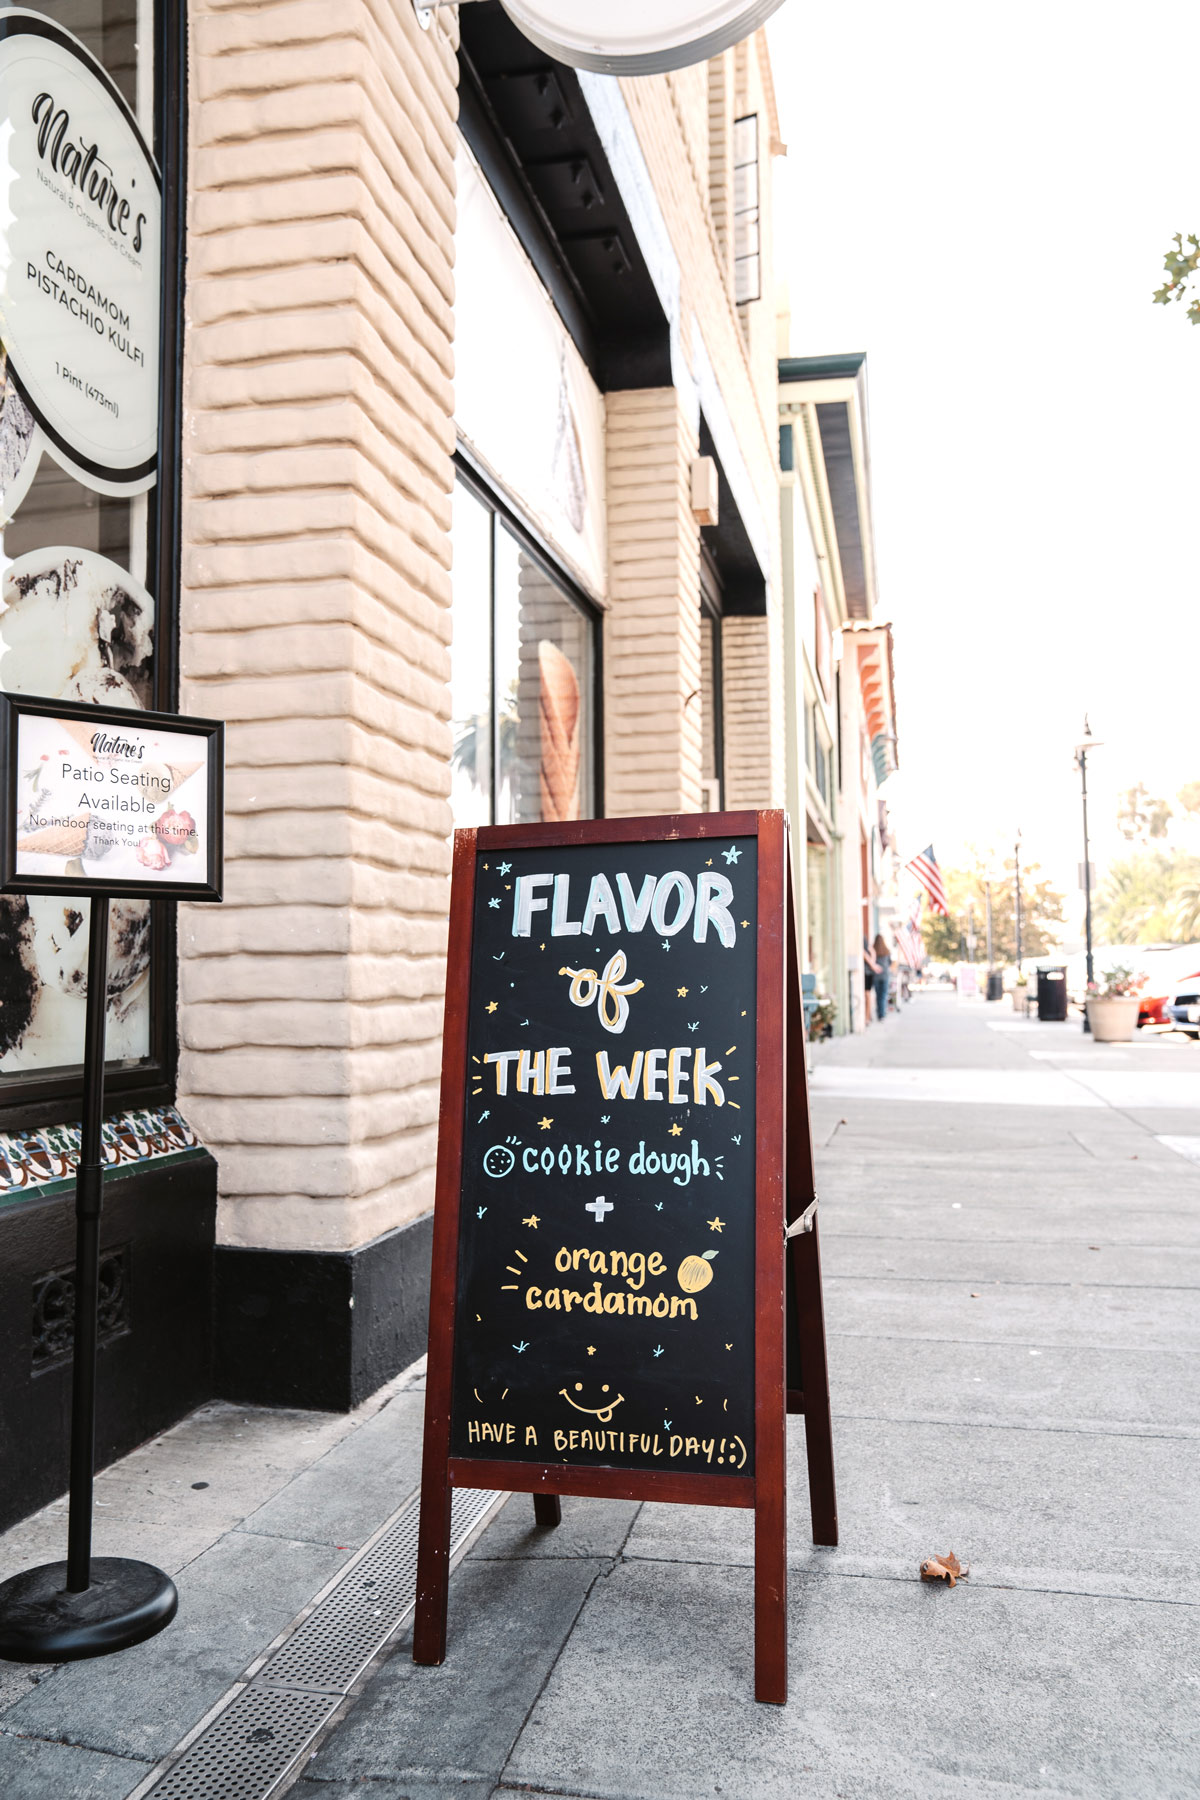 Flavor of the week cookie dough - Nature's